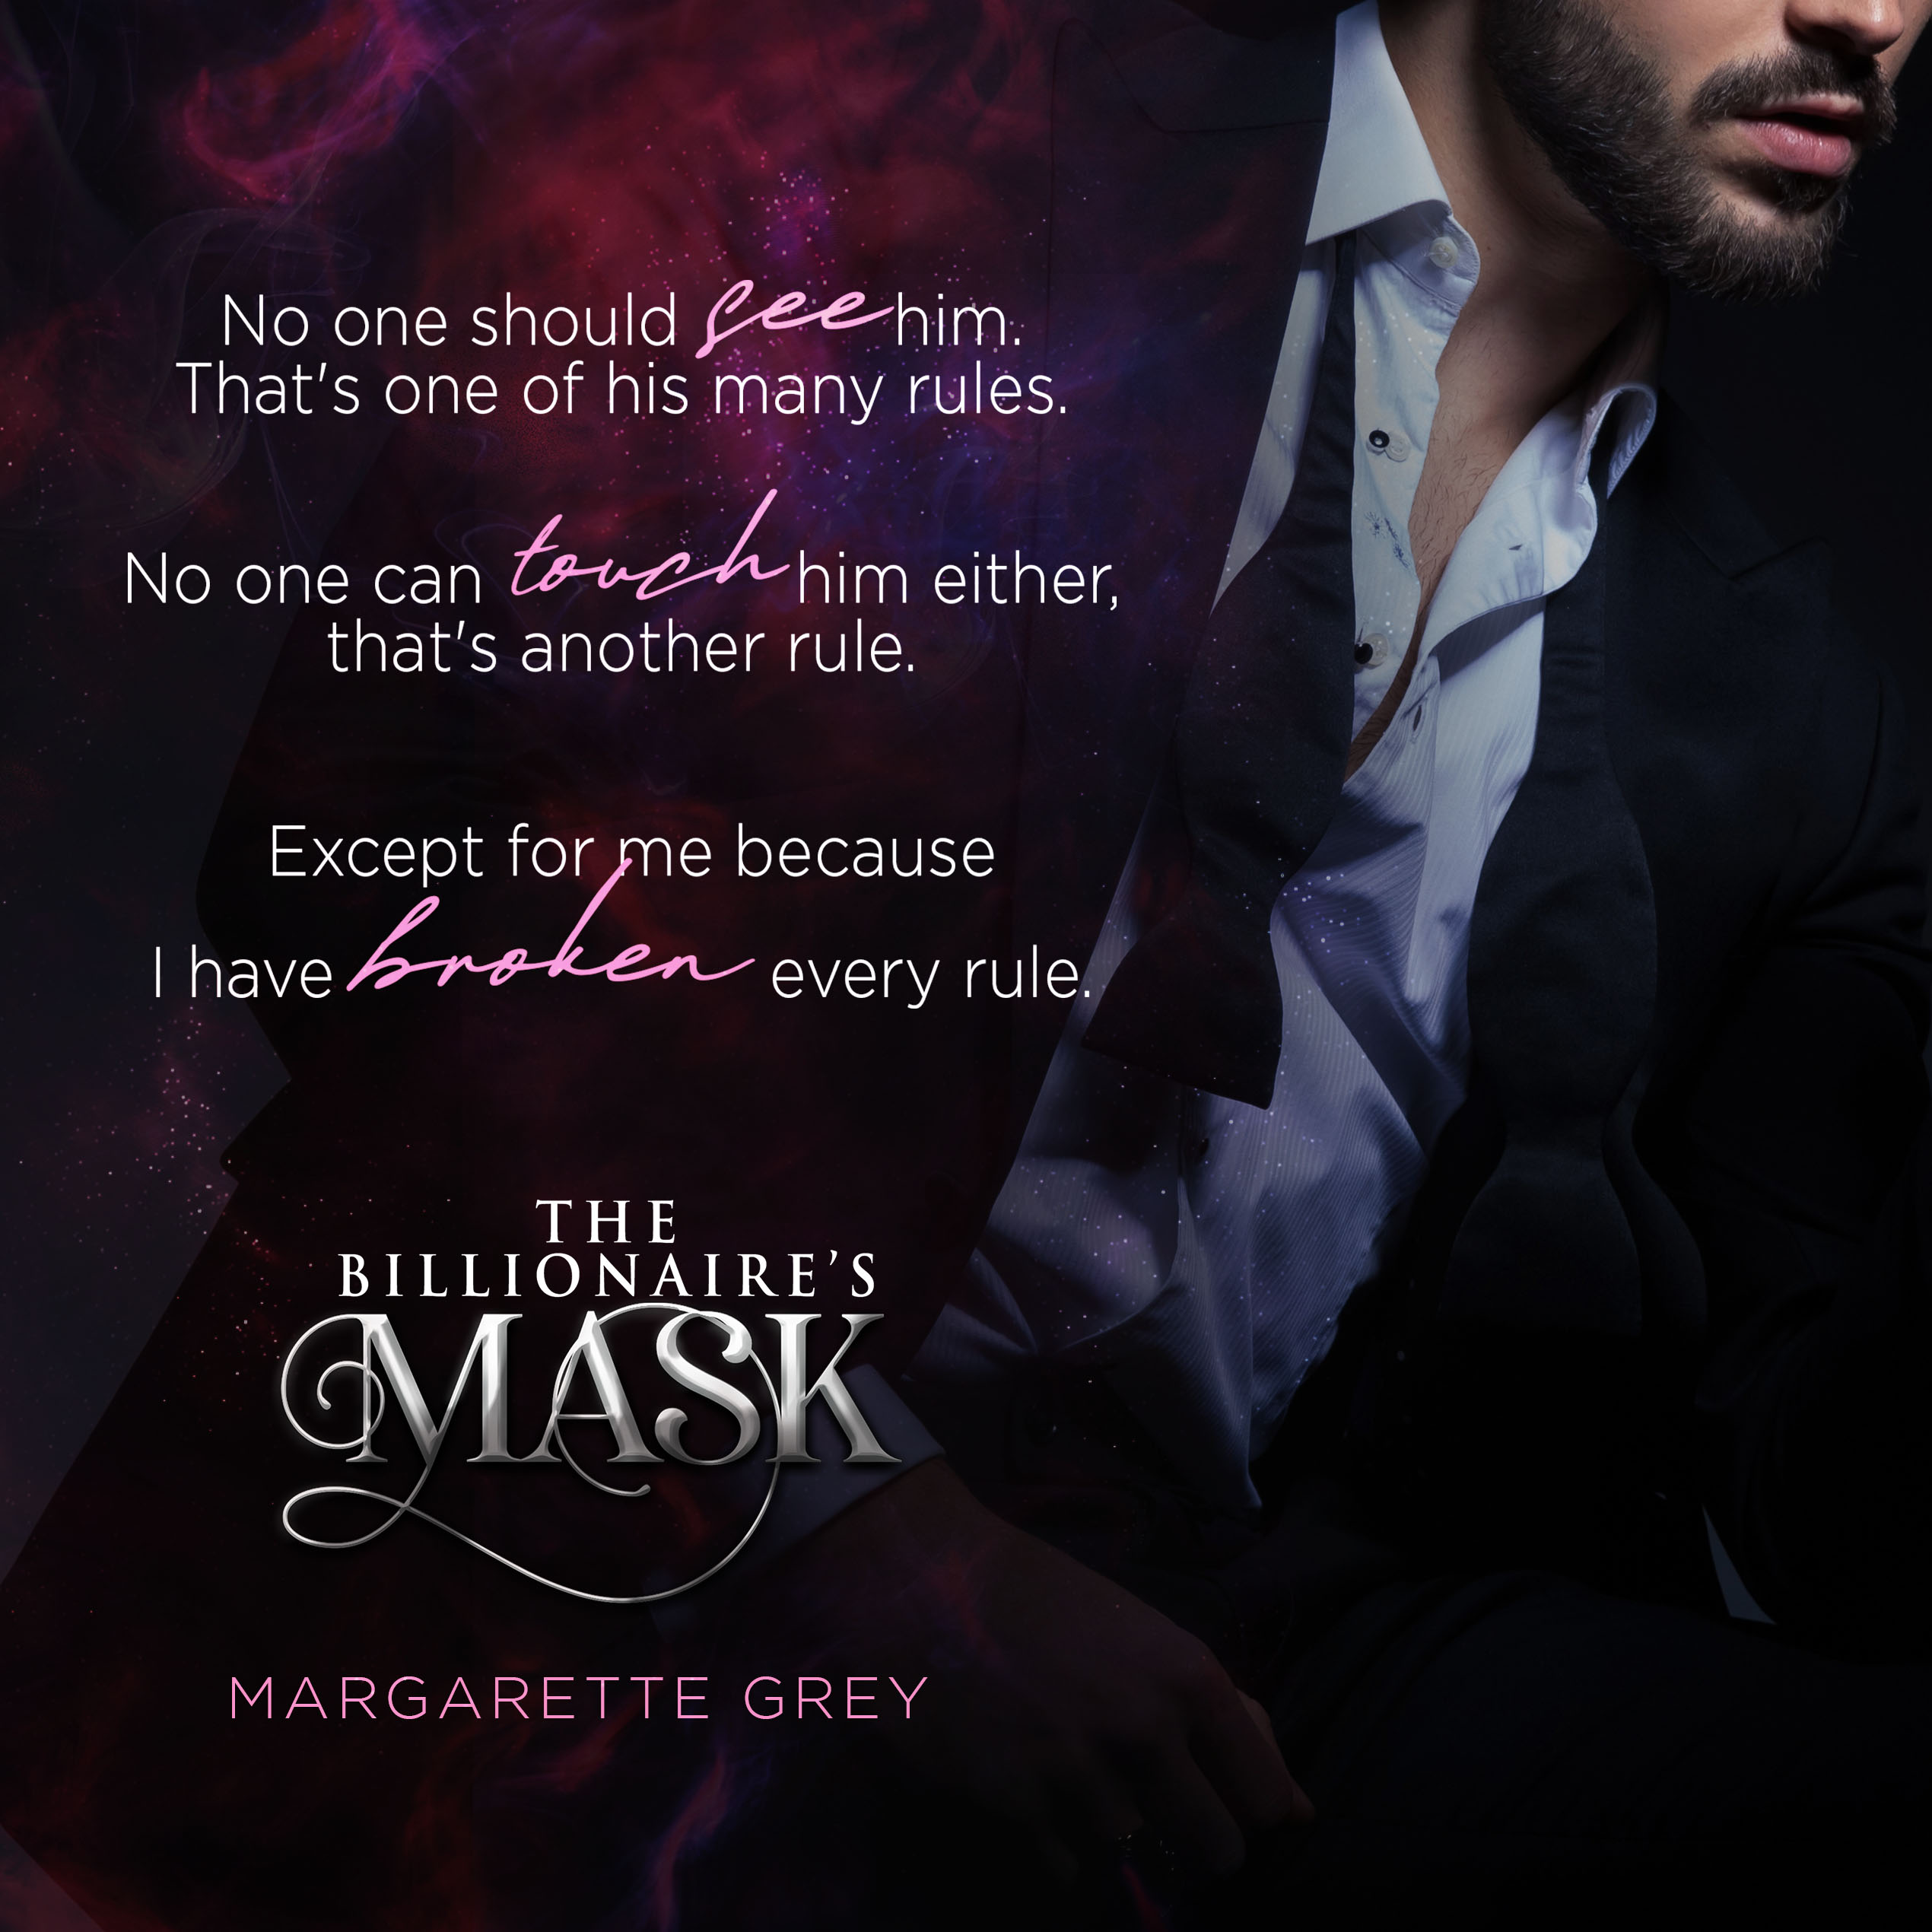 April 5th The Billionaire's Mask Teaser